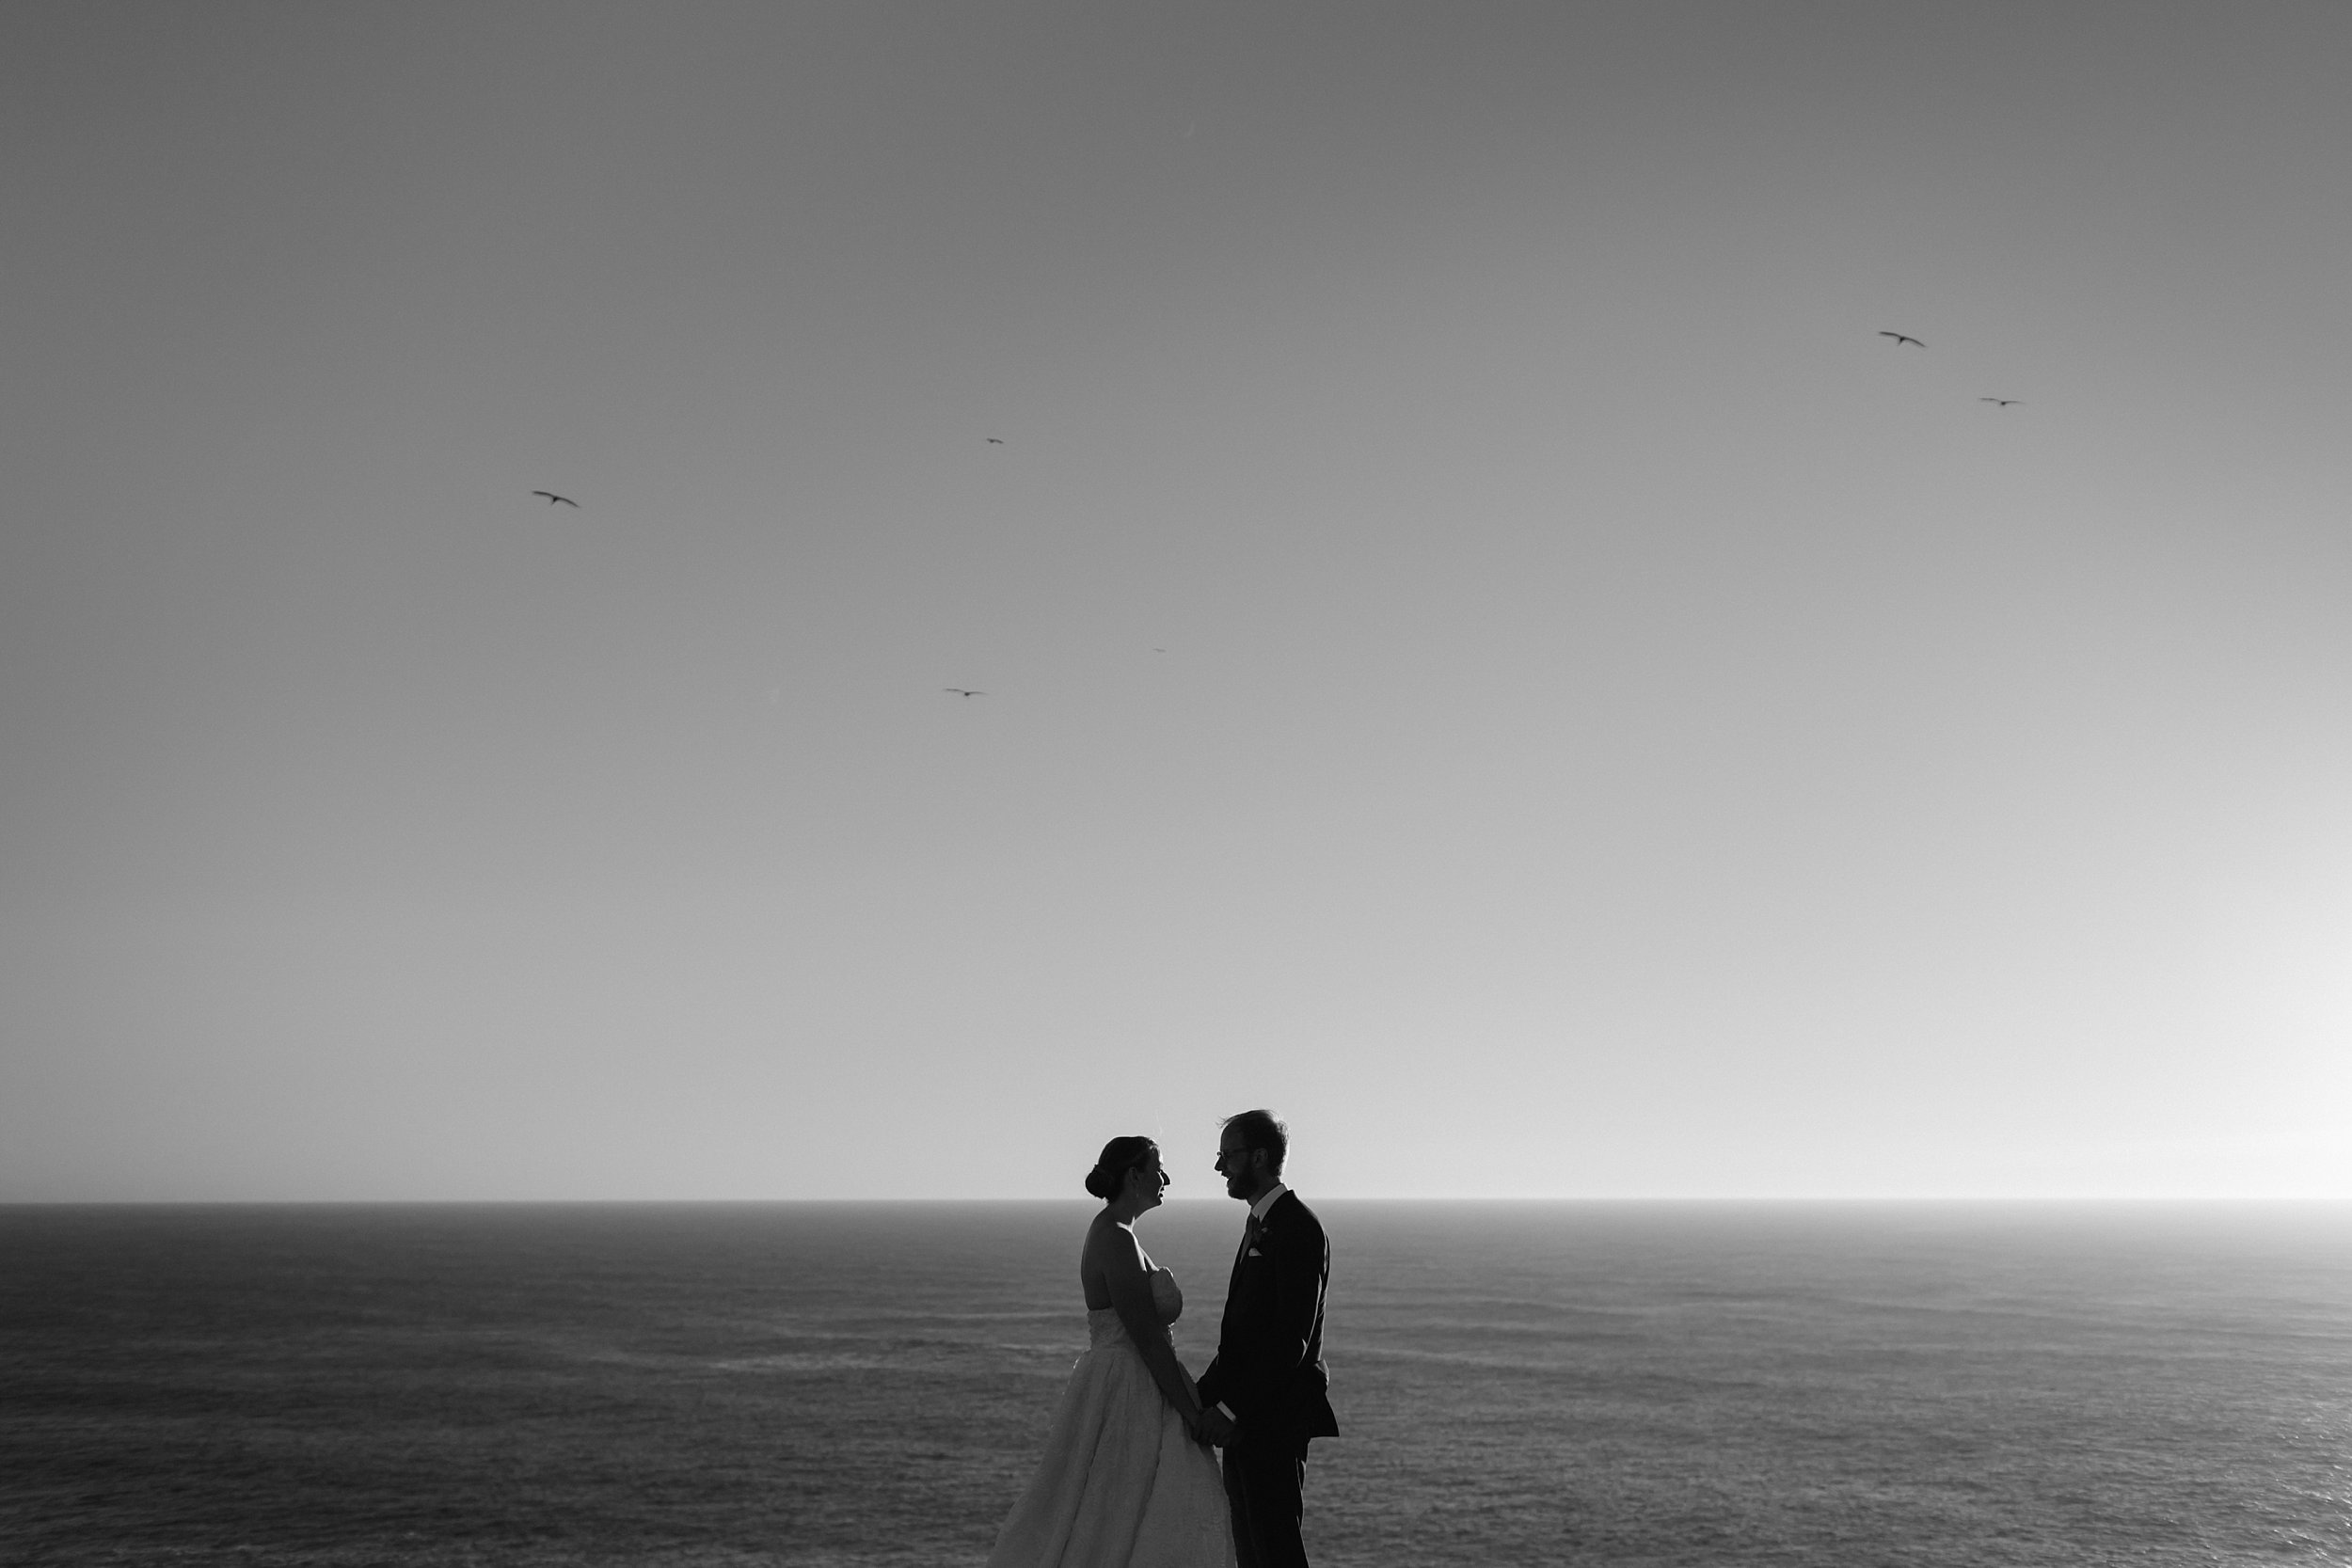 Wedding ceremony at the Marin Headlands in California